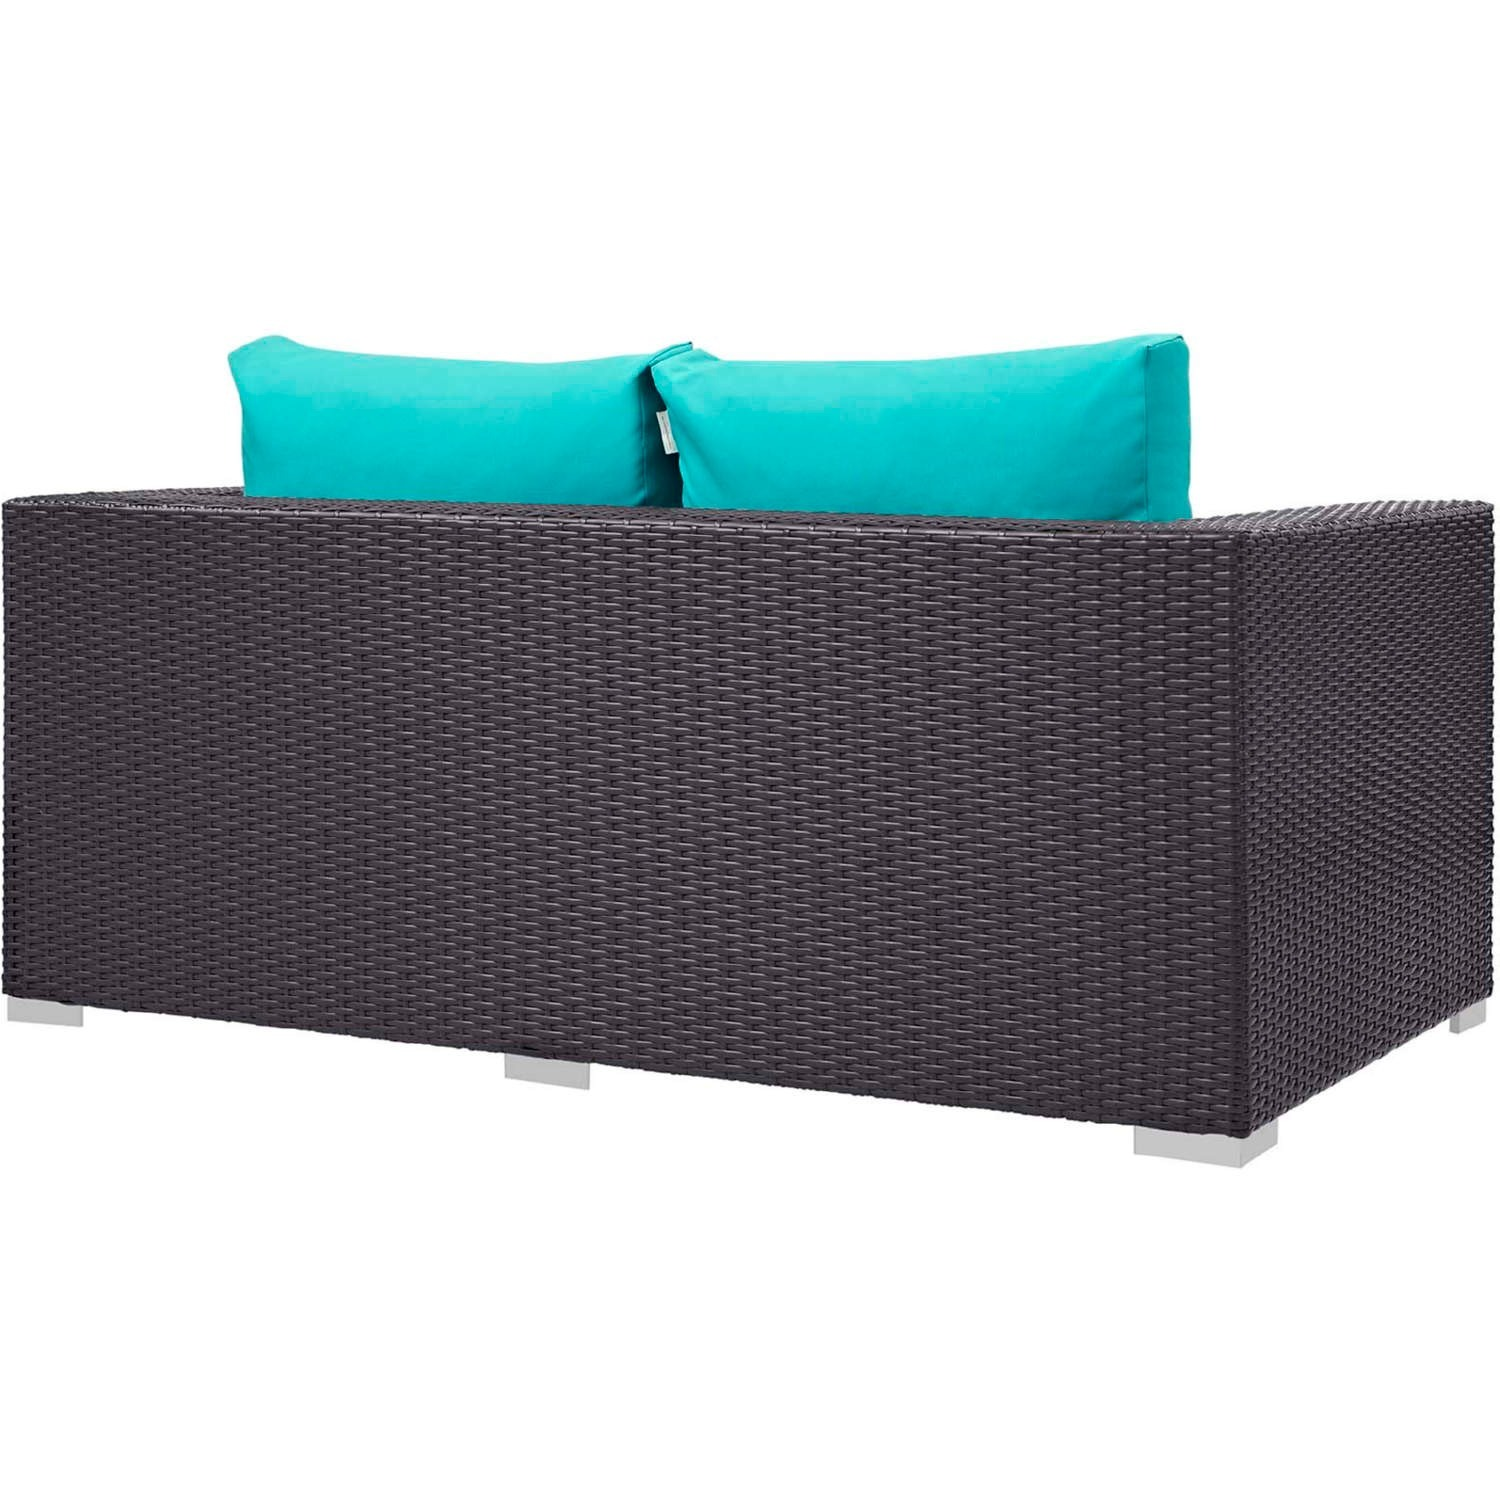 4-Piece Outdoor Sectional In Turquoise W/ Fire Pit - image-5